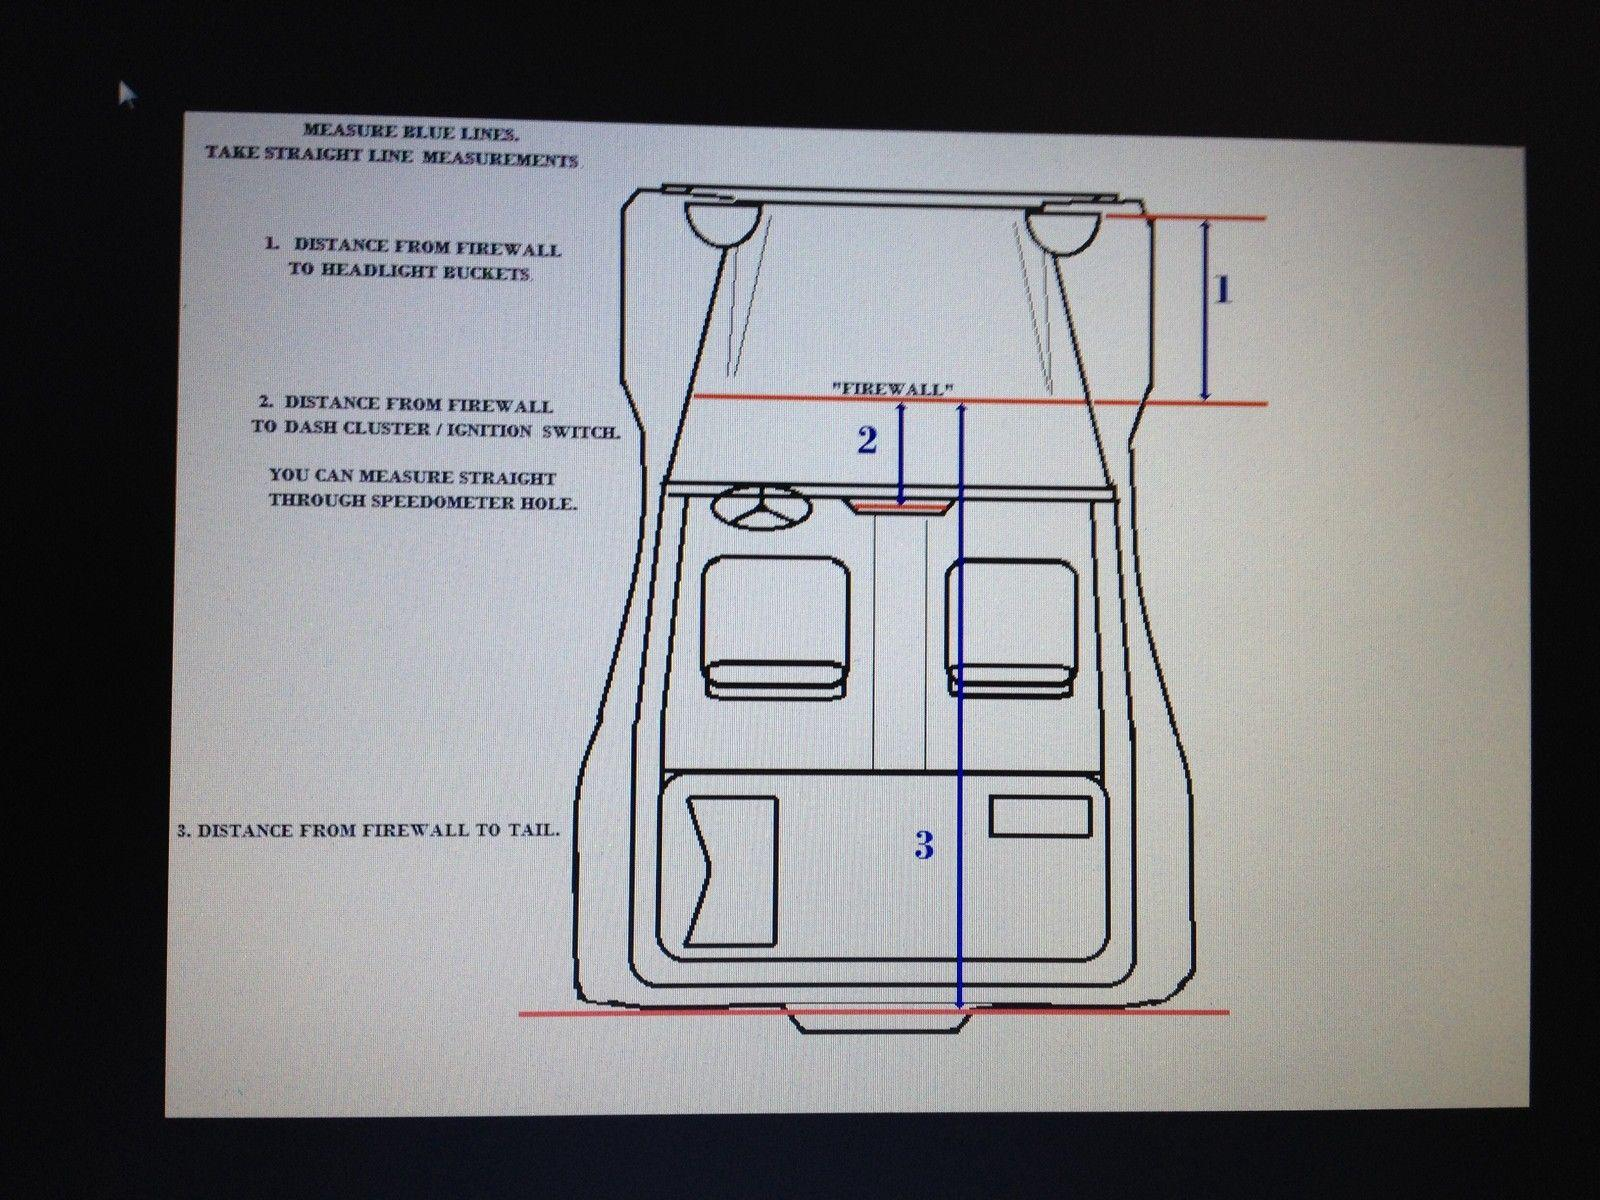 Vw Rail Buggy Wiring | Wiring Diagram Vw Wiring Harness Kit on vw bug wiring, universal fog light kits, vw thing lift kit, vw dune buggy wiring harness, vw wiring connectors, vw thing wiring harness, vw cc fog light harness, vw beetle wiring harness, vw wiring diagrams, vw wire harness, vw bus wiring harness, radio control sailboat kits,